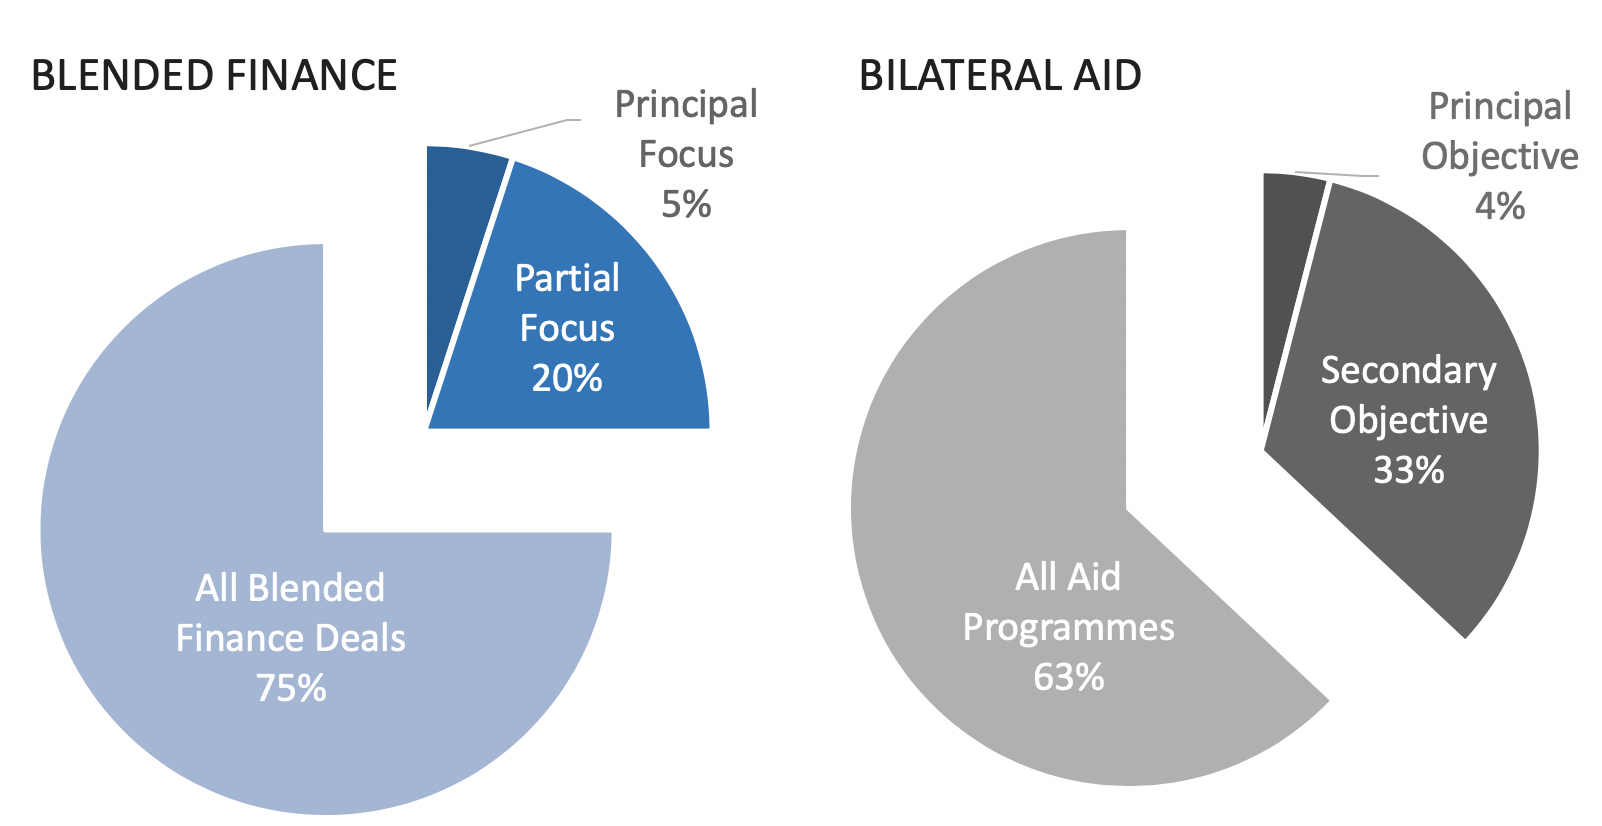 Blended finance vs bilateral aid in gender